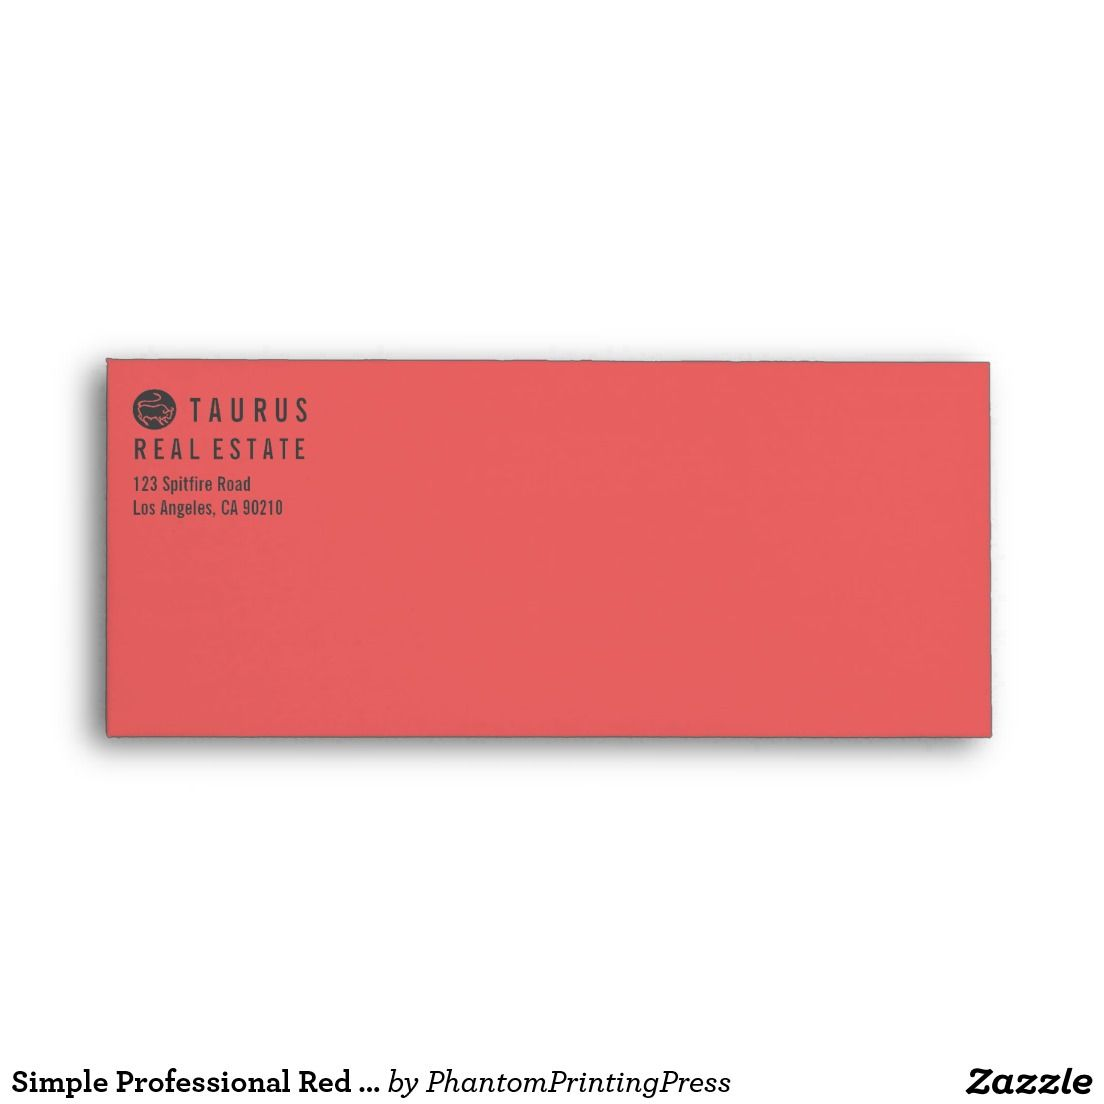 Simple Professional Red Letterhead Envelope | Envelopes and Printing ...